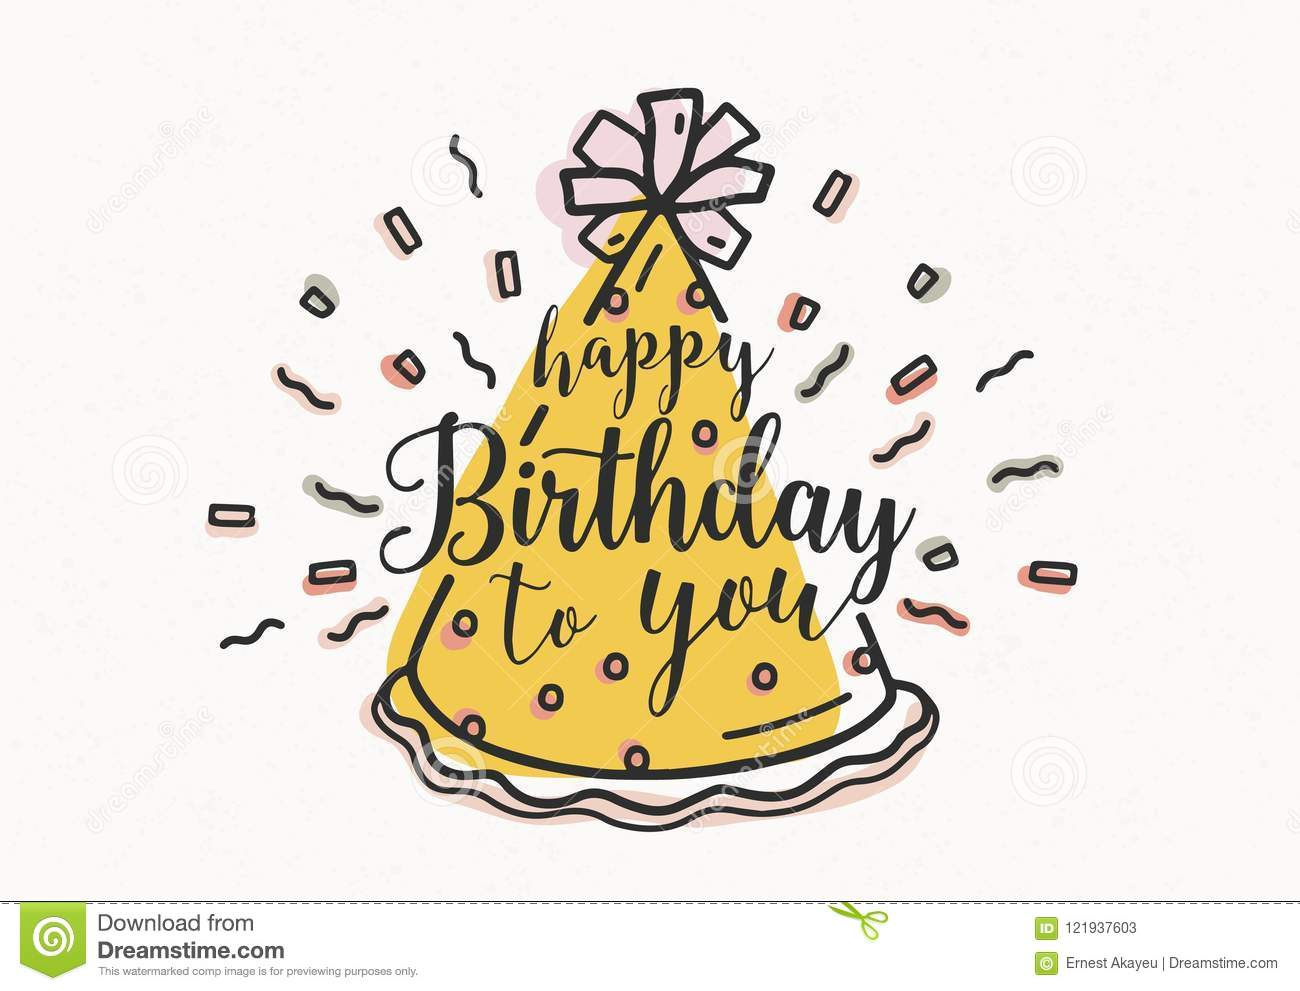 Download Happy Birthday To You Wish Handwritten With Cursive Font And Decorated Cone Party Hat